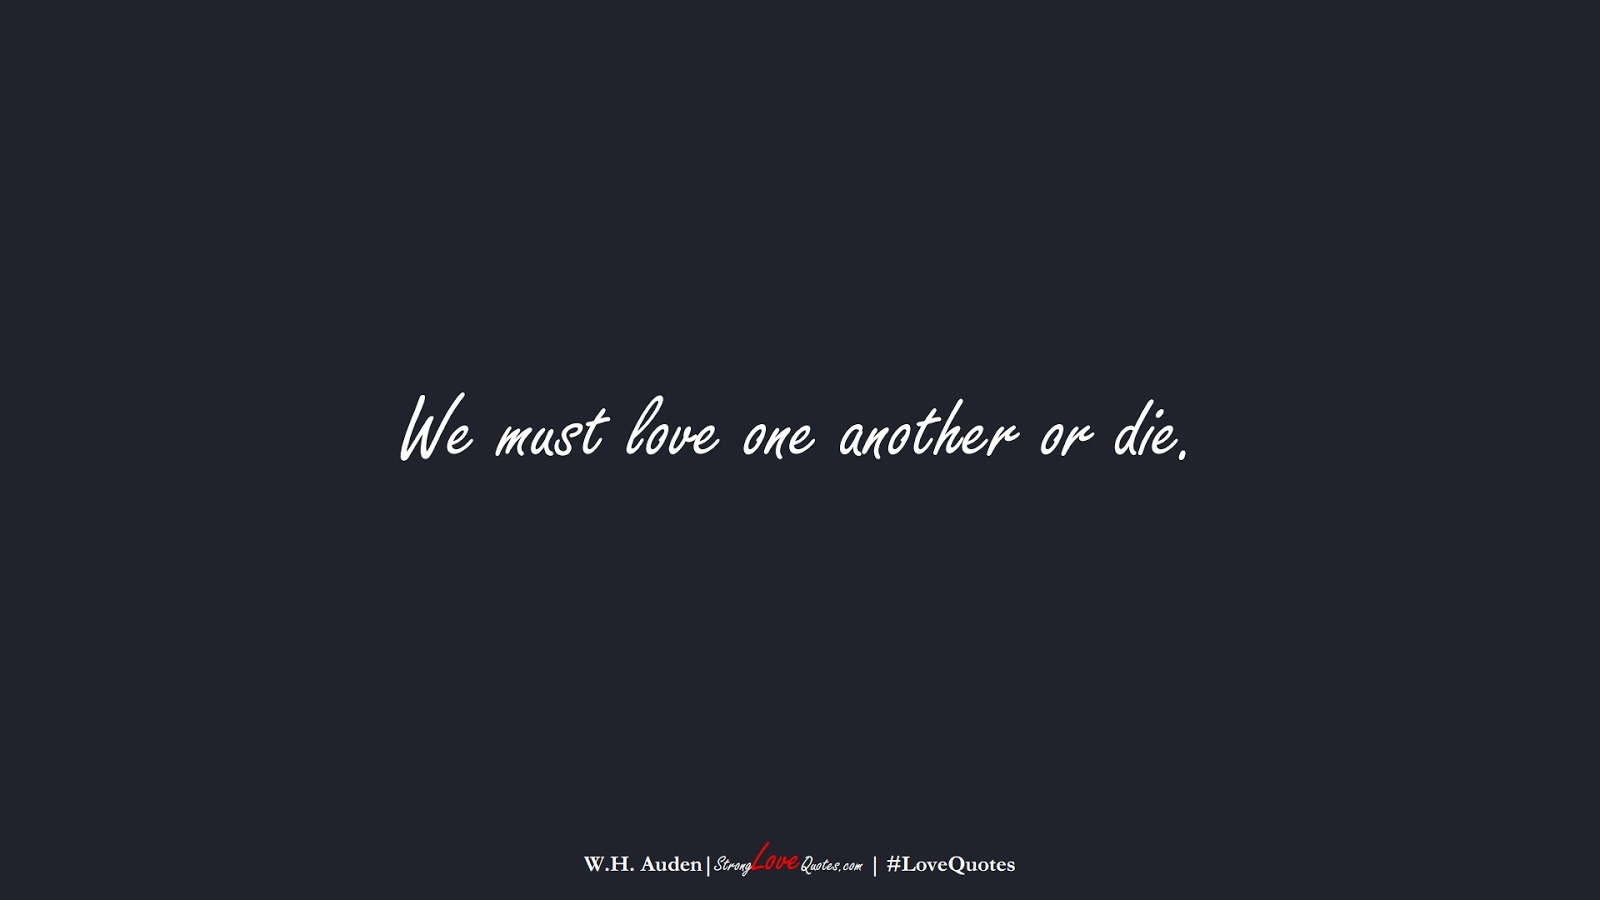 We must love one another or die. (W.H. Auden);  #LoveQuotes